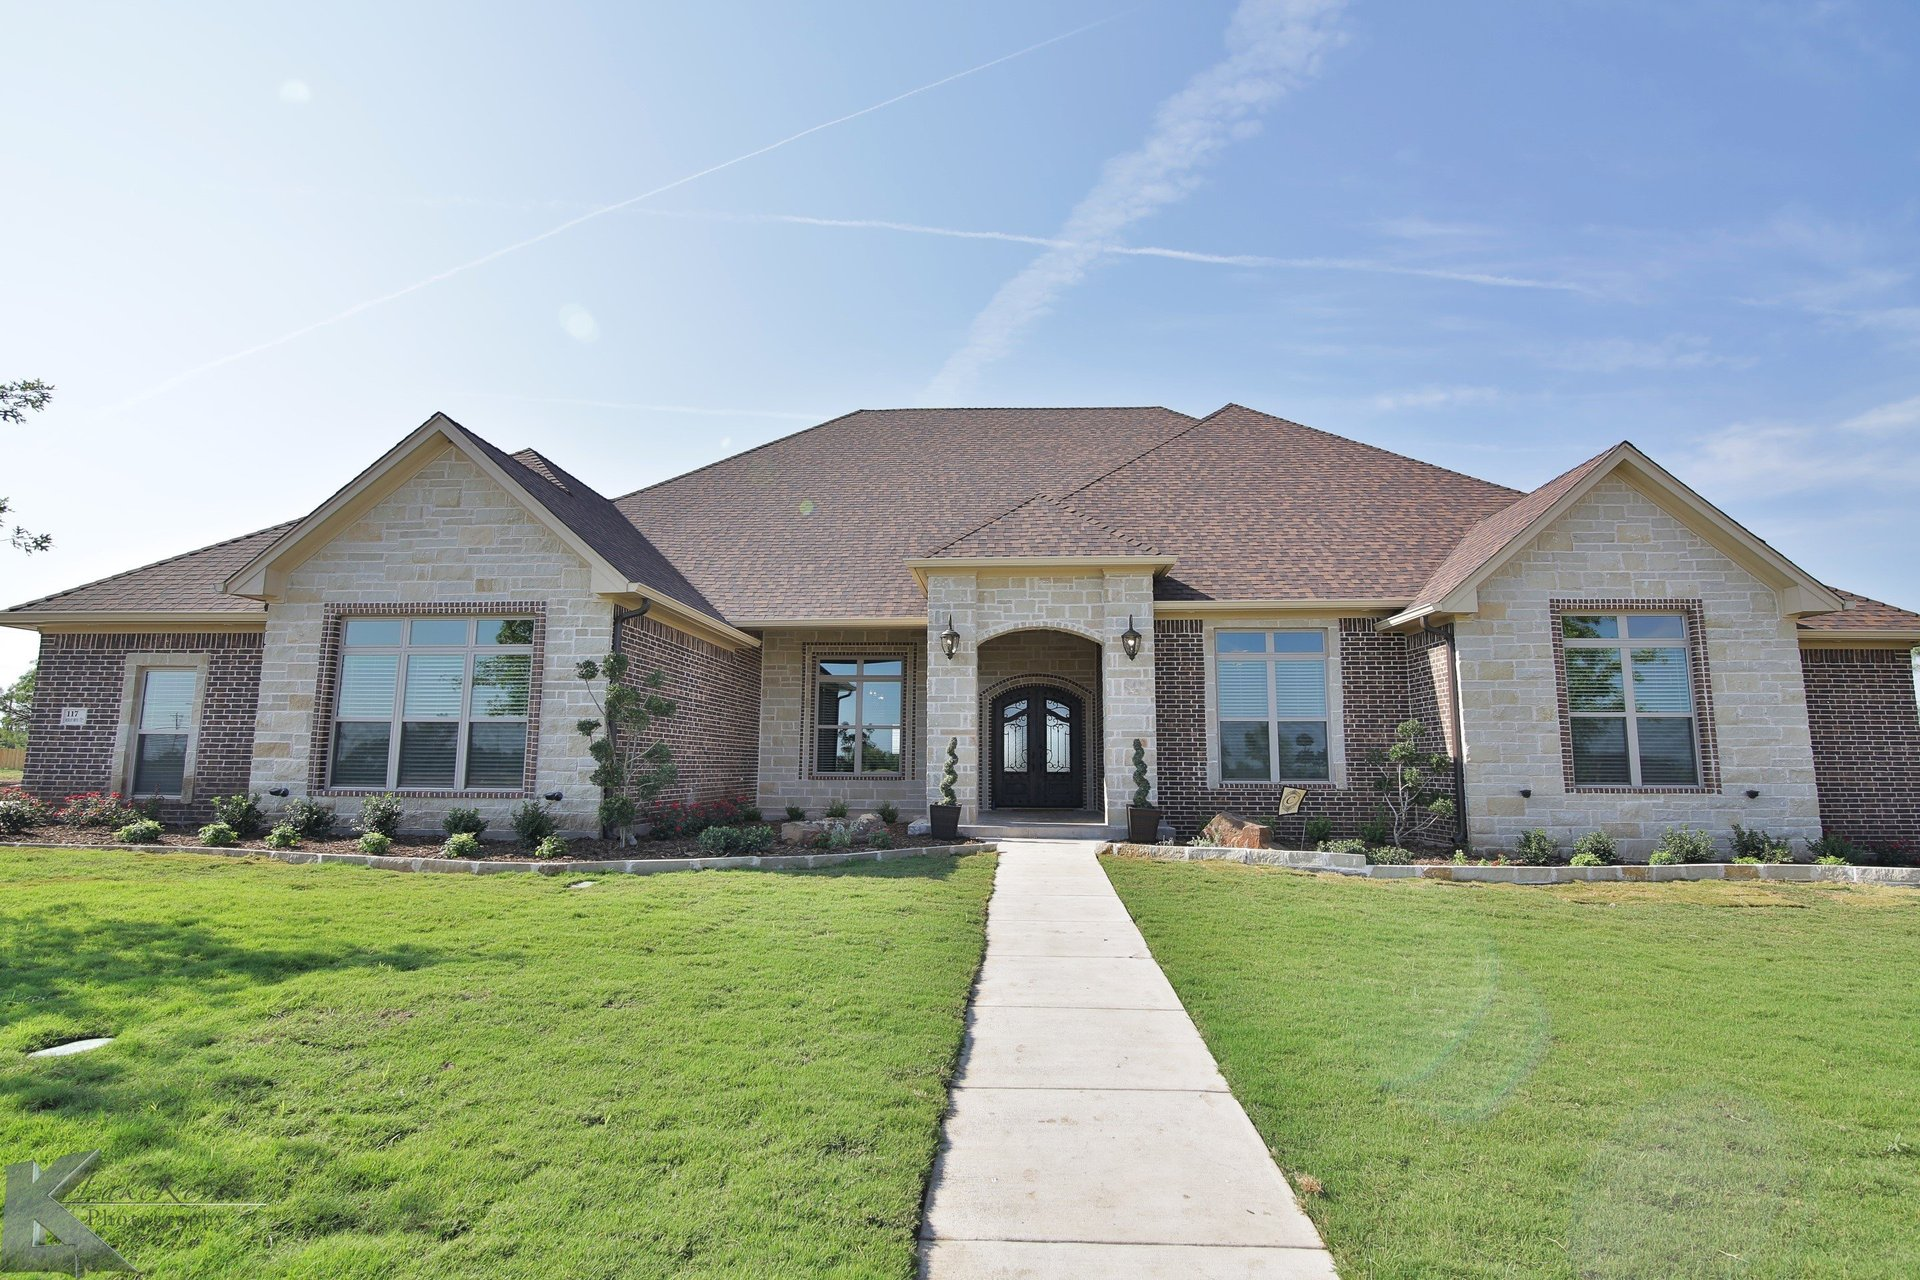 Home builders in abilene tx - Energy Efficient Homes Abilene Tx